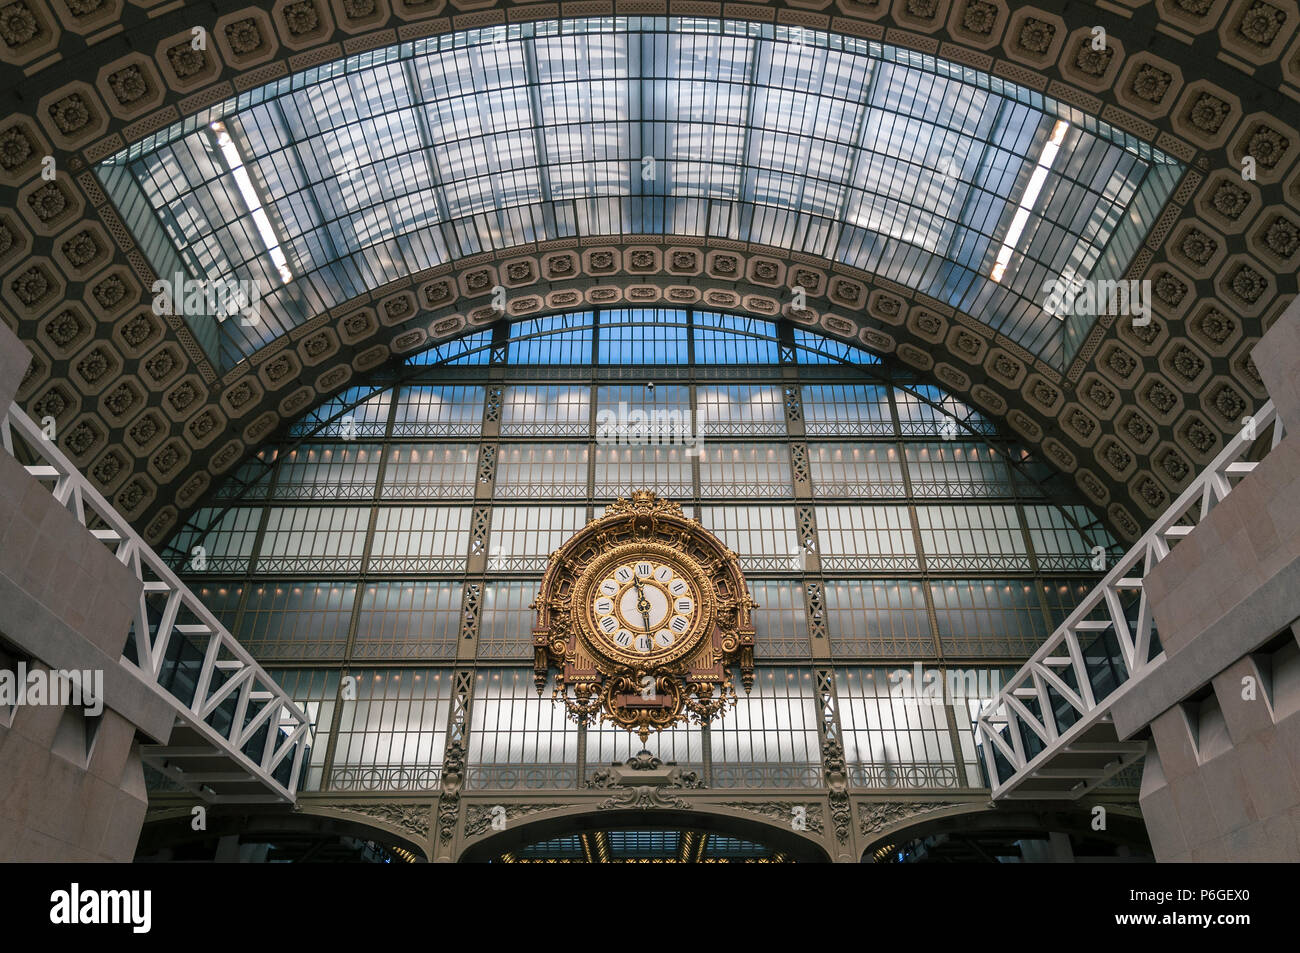 Clock from Musée d'Orsay - Stock Image